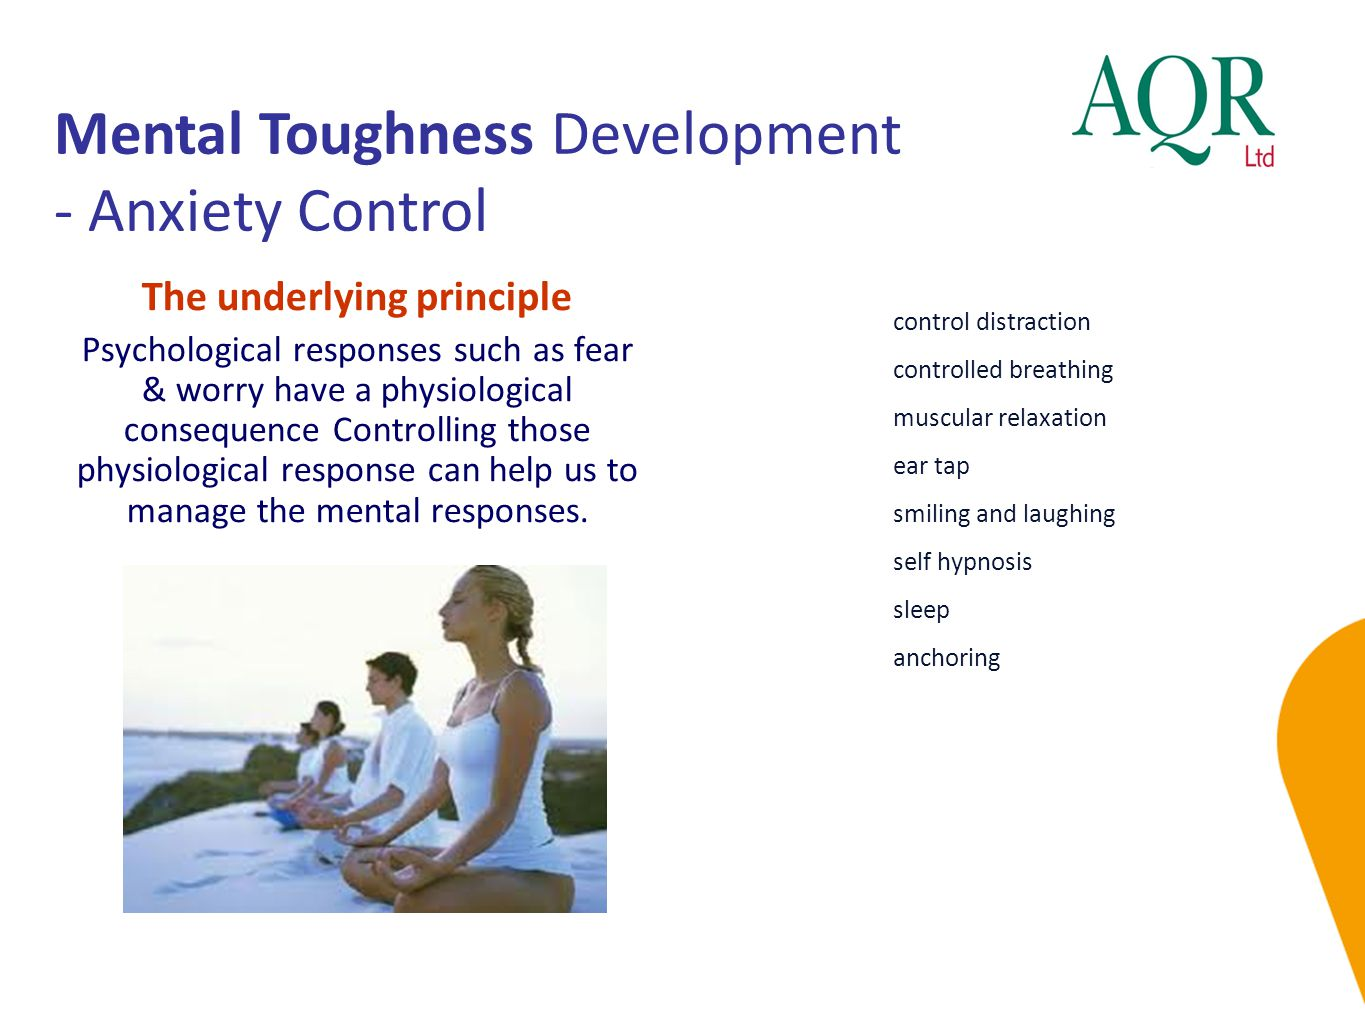 Mental Toughness Development - Anxiety Control